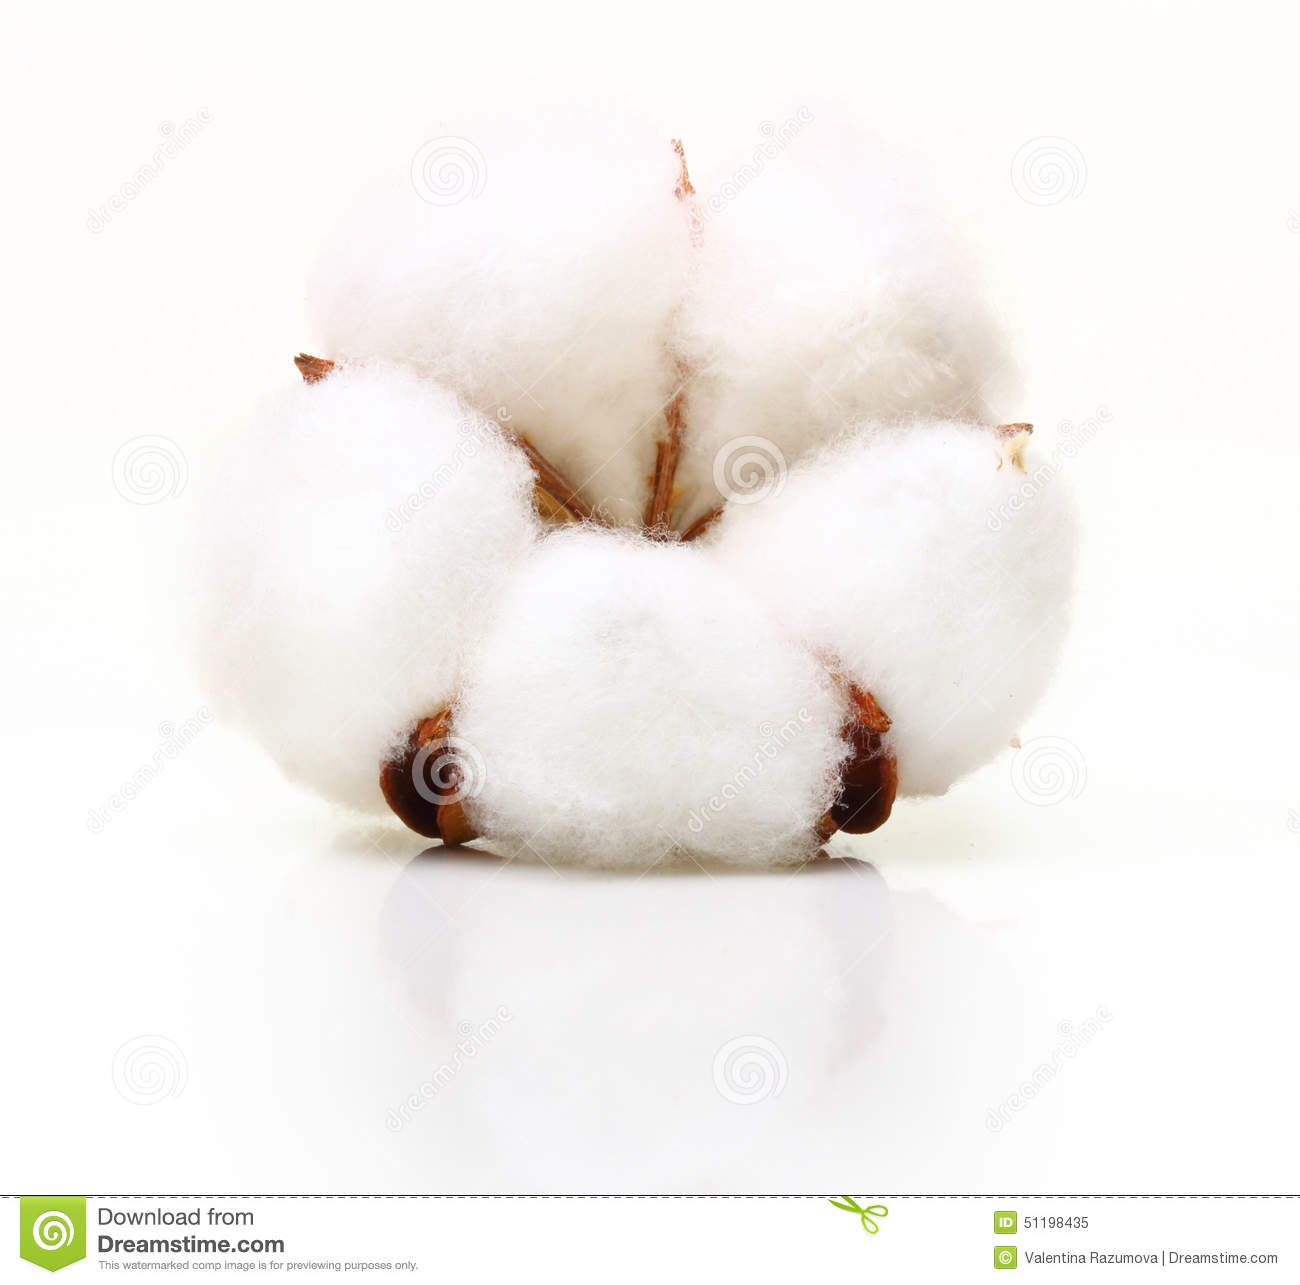 cotton plant singles over 50 Planet earth singles: dating for green singles, vegan singles, vegetarian singles meet your eco-conscious match here best dating site.